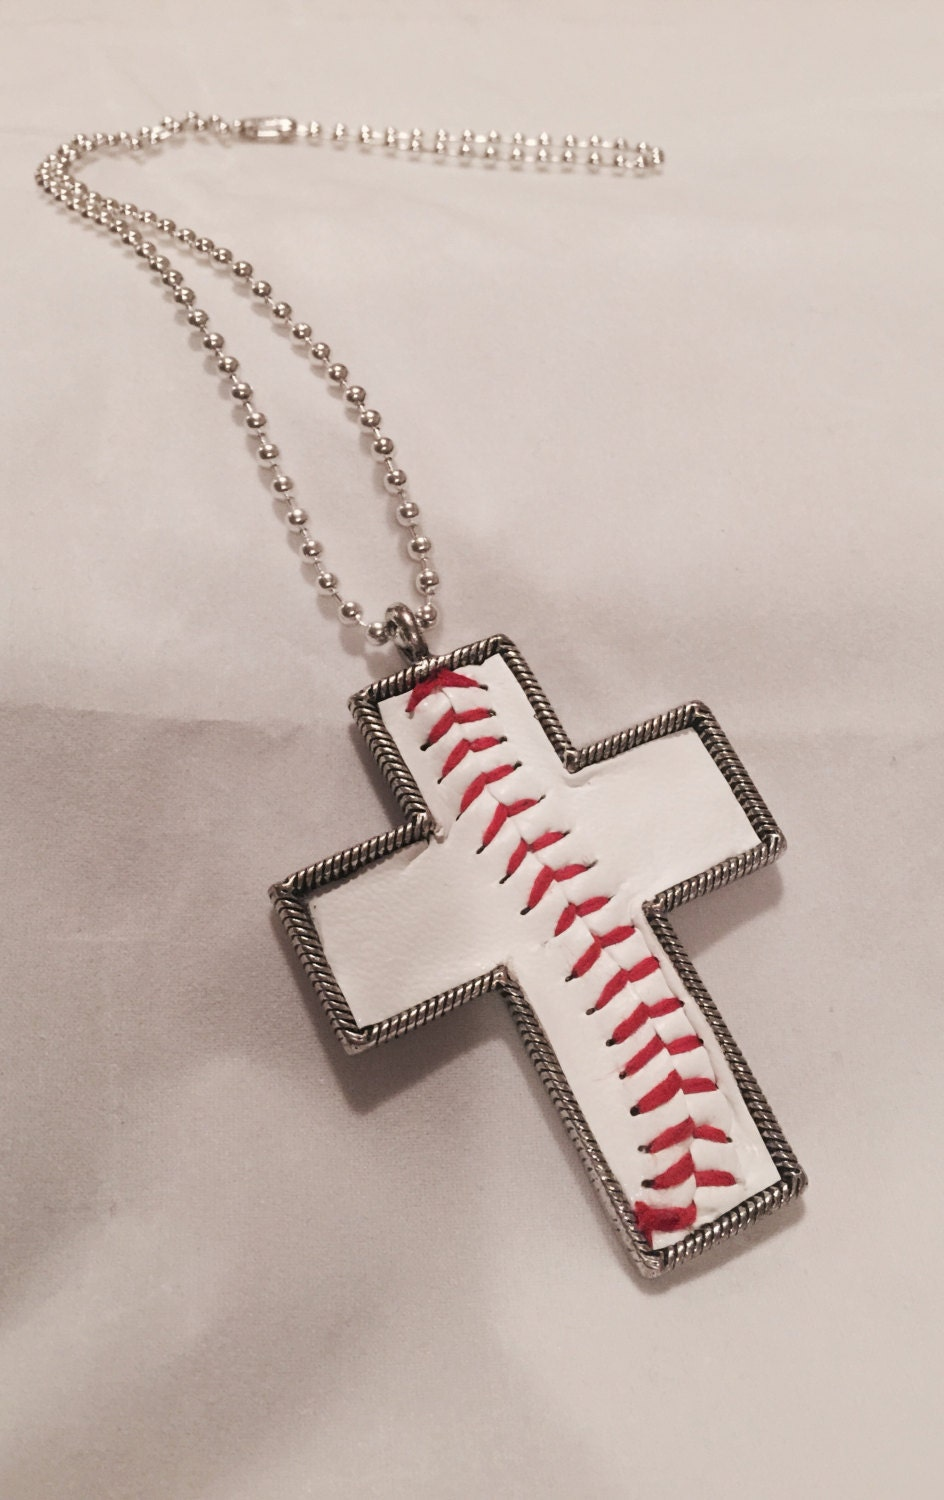 Welcome to FiveTool Baseball Jewelry. We are the official baseball brand of All In Faith Jewelry and See More. Community See All. , people like this. 10K GOLD BASEBALL BAT CROSS AND NECKLACE. $ BASEBALL BAT CROSS 20 IN CHAIN AND PENDANT(YOUNG ADULT) $ BASEBALL BAT CROSS 18 IN CHAIN AND PENDANT (YOUTH.